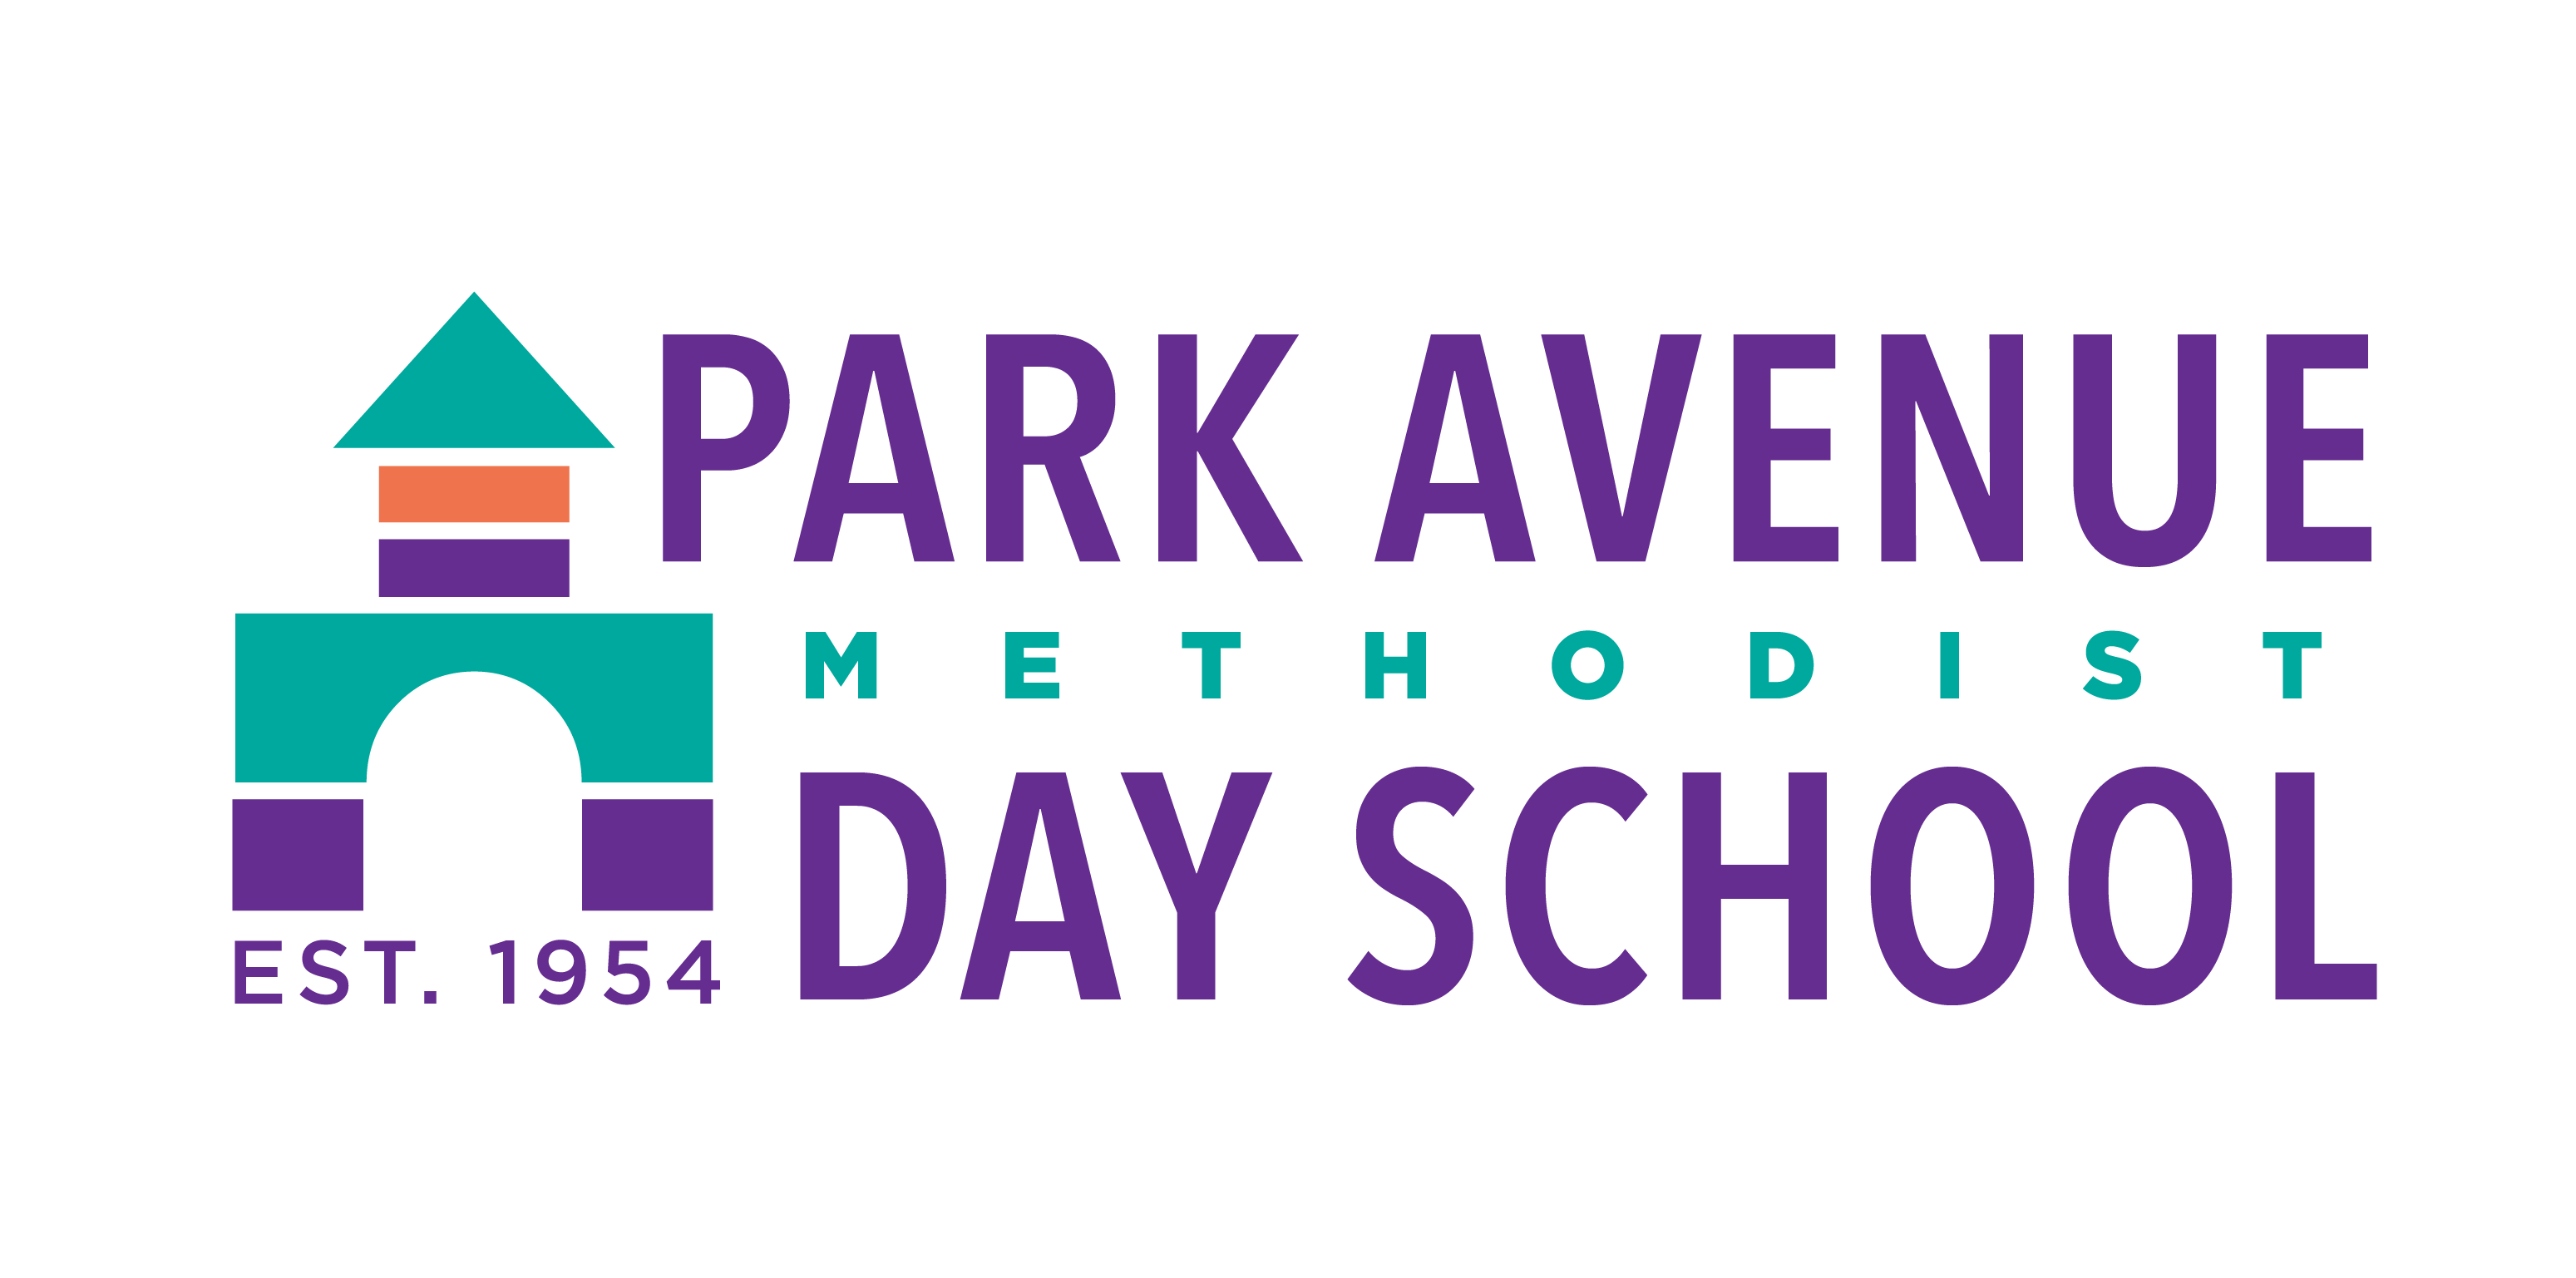 Staff and Board | Park Avenue Methodist Day School